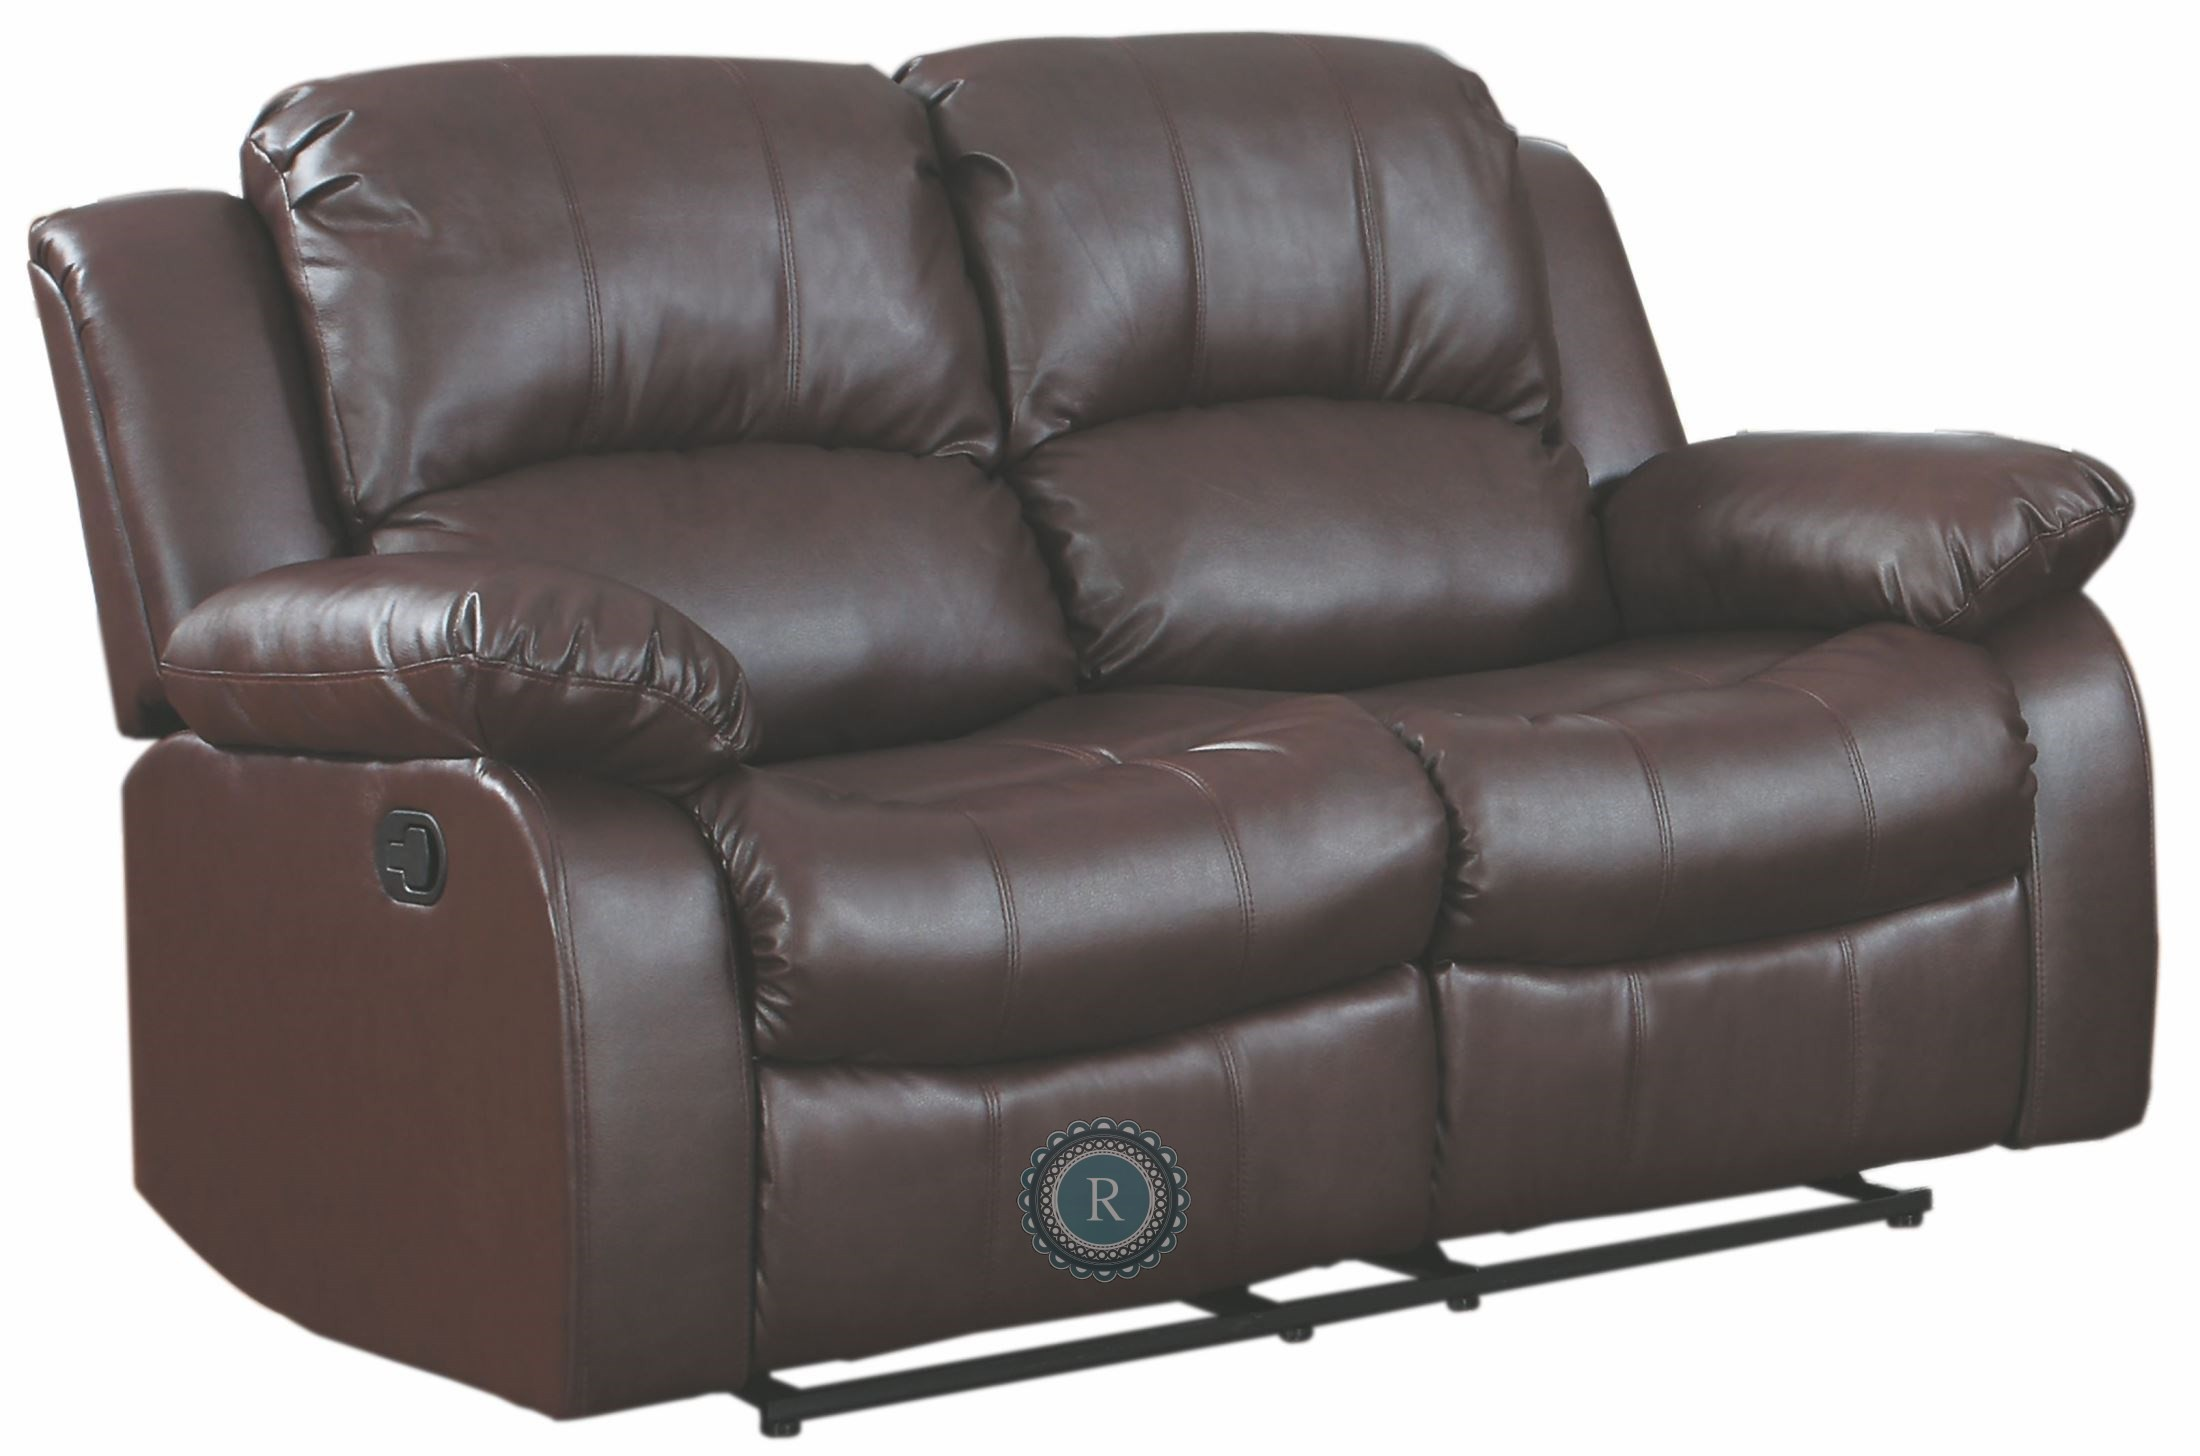 Cranley Brown Power Double Reclining Loveseat From Homelegance 9700brw 2pw Coleman Furniture